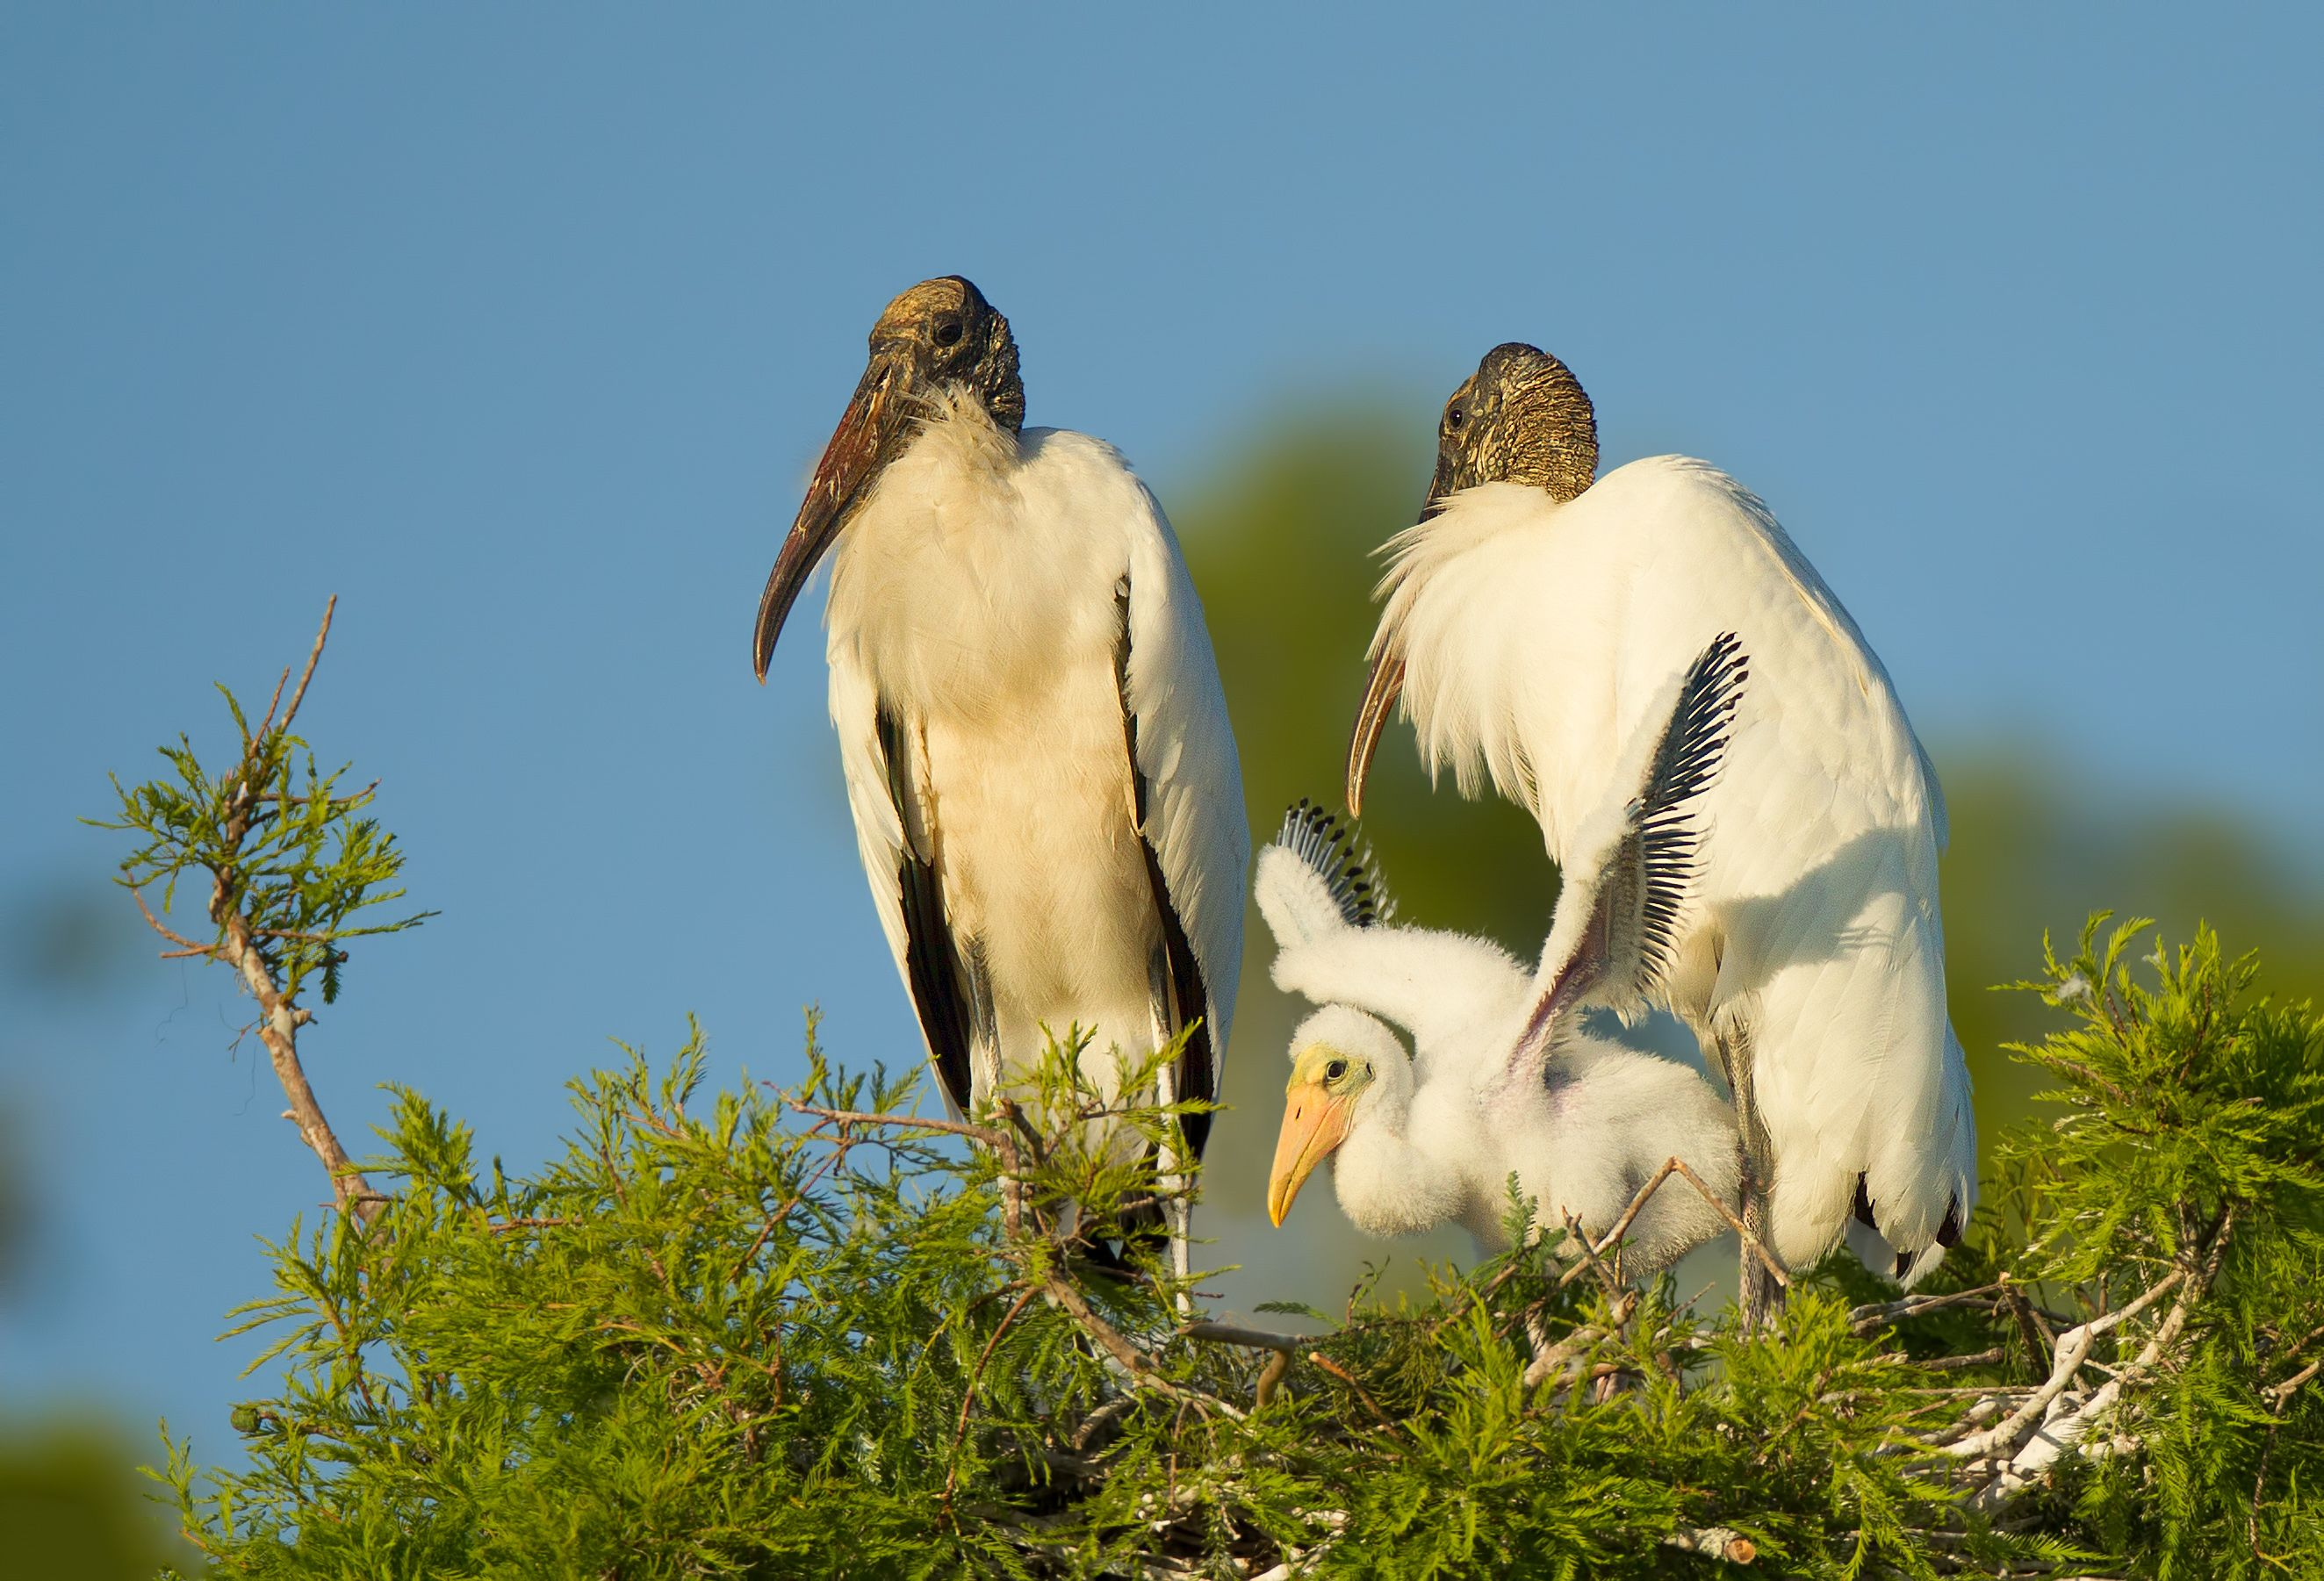 Wood stork parents in the nest with a young stork.